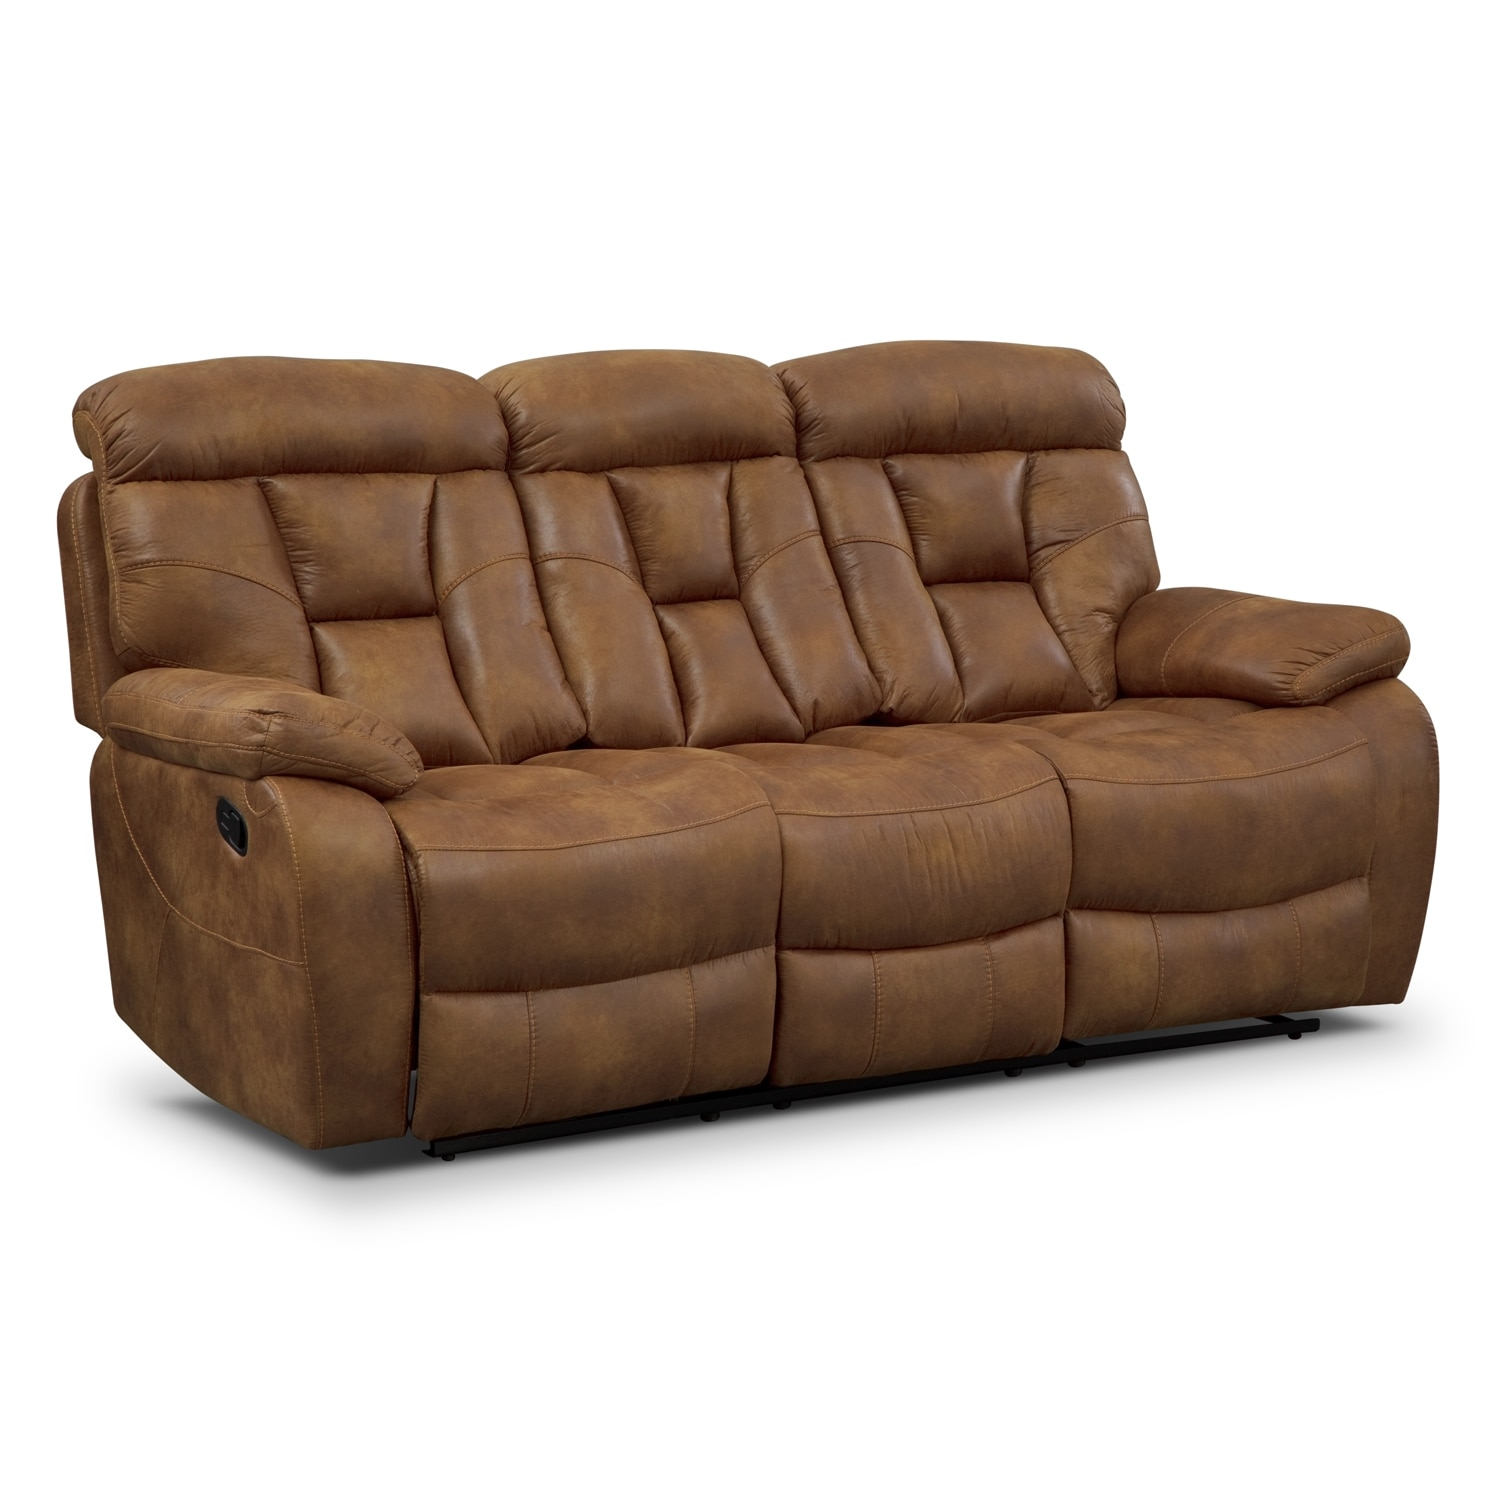 Dakota reclining sofa almond value city furniture Couches and loveseats